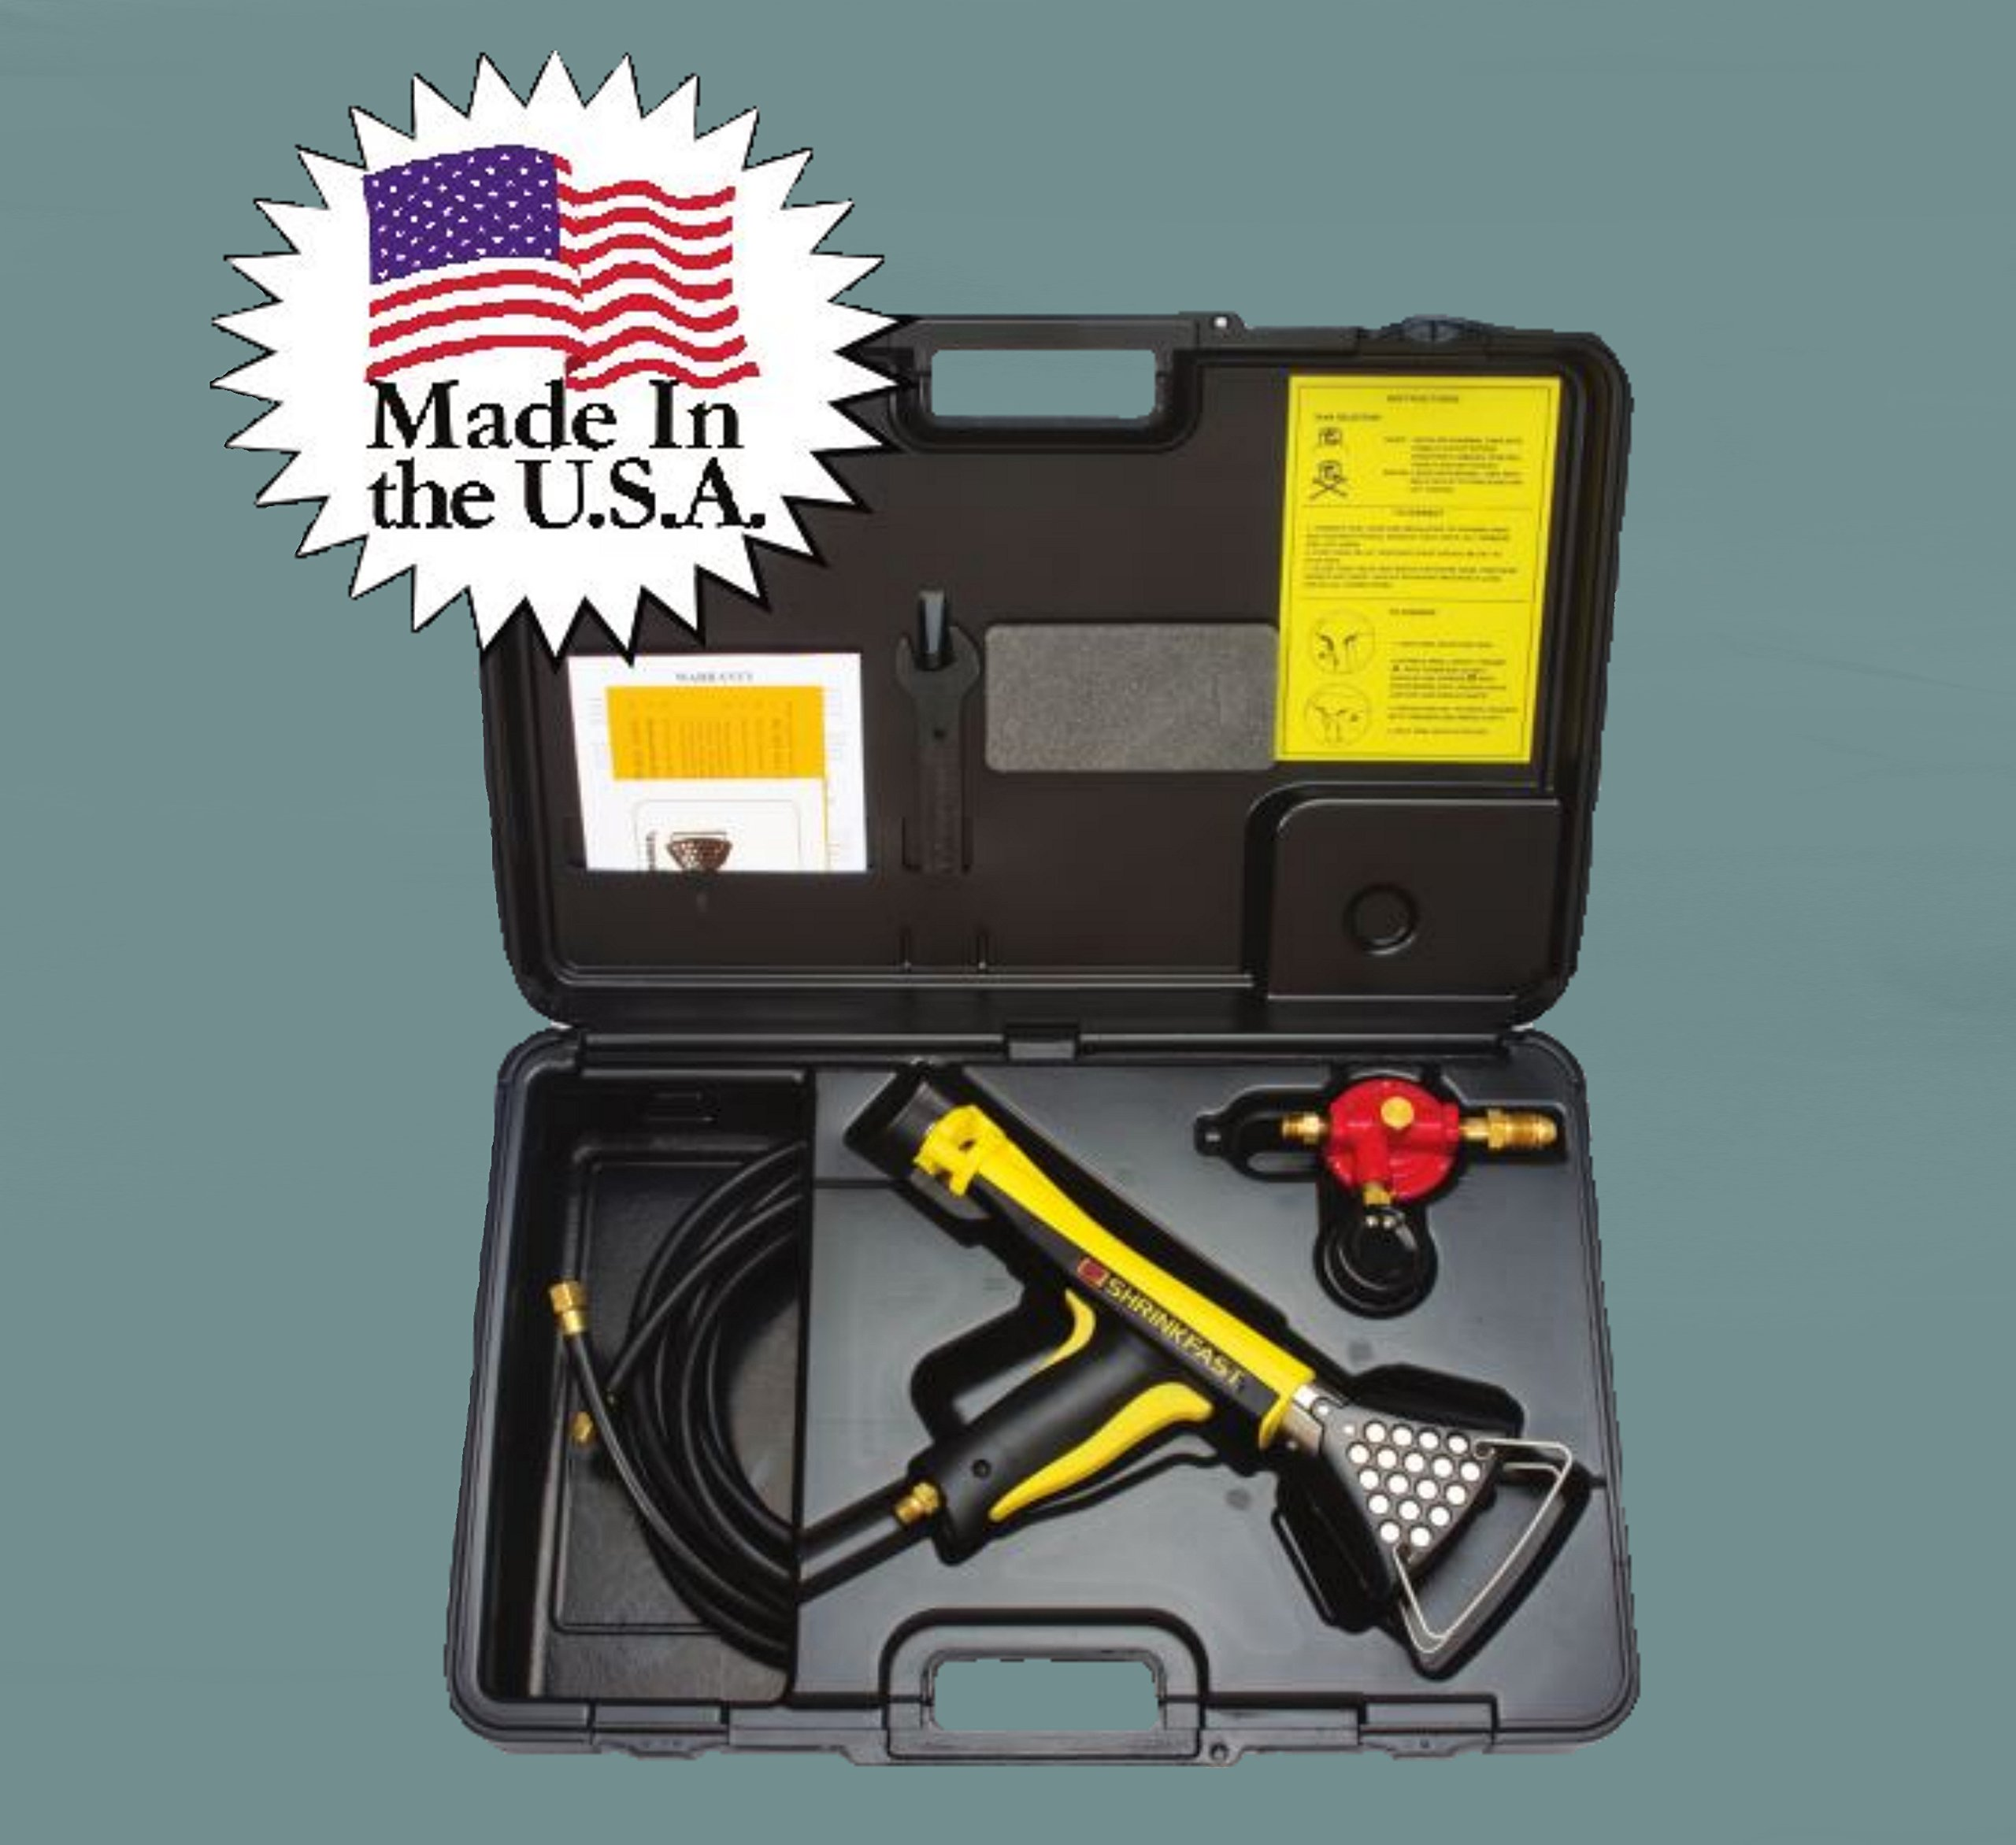 Shrinkfast Mz Heat Gun Kit Buy Online In Cayman Islands Shrinkfast Mz Products In Cayman Islands See Prices Reviews And Free Delivery Over Ci 60 Desertcart